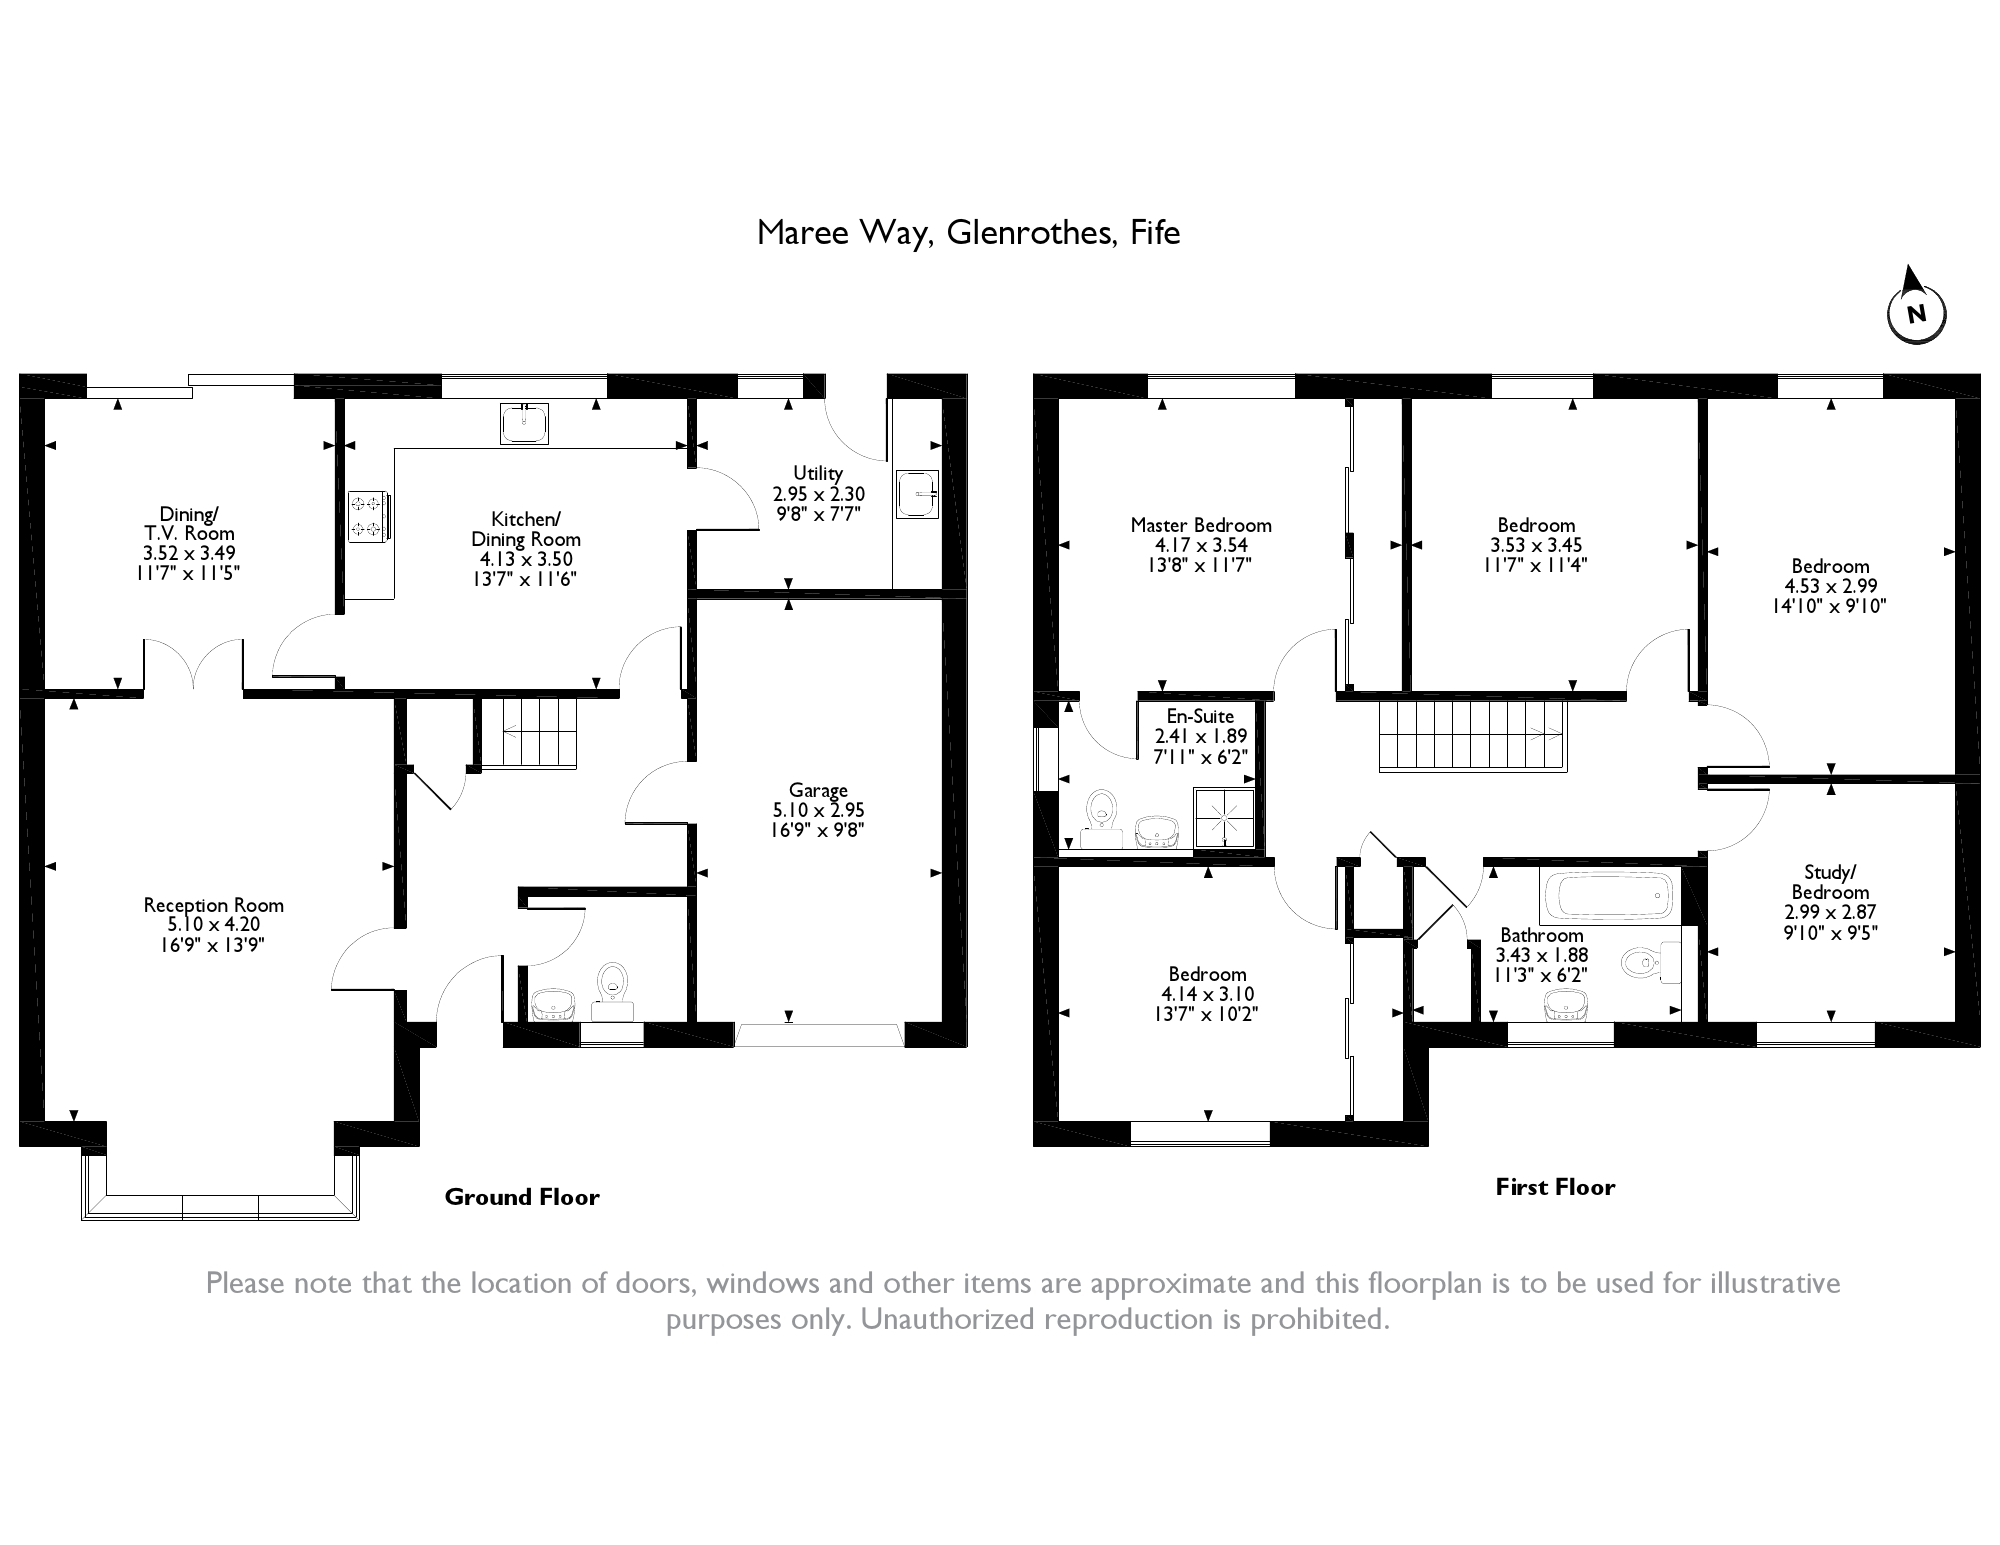 Maree Way, Glenrothes, KY7 floor plan